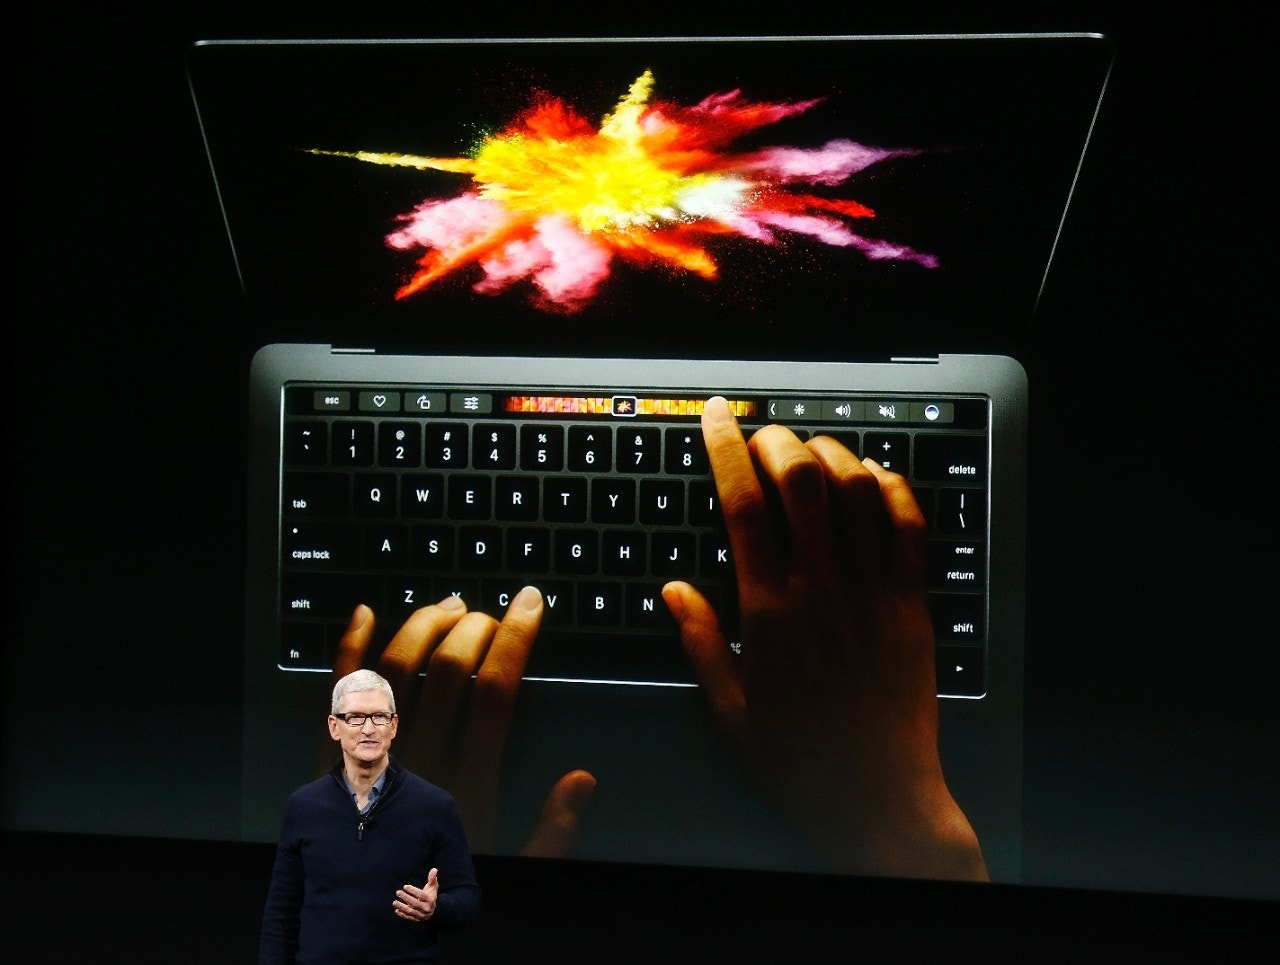 Apple releases fix to MacBook Pros in response to Consumer Reports' battery test results